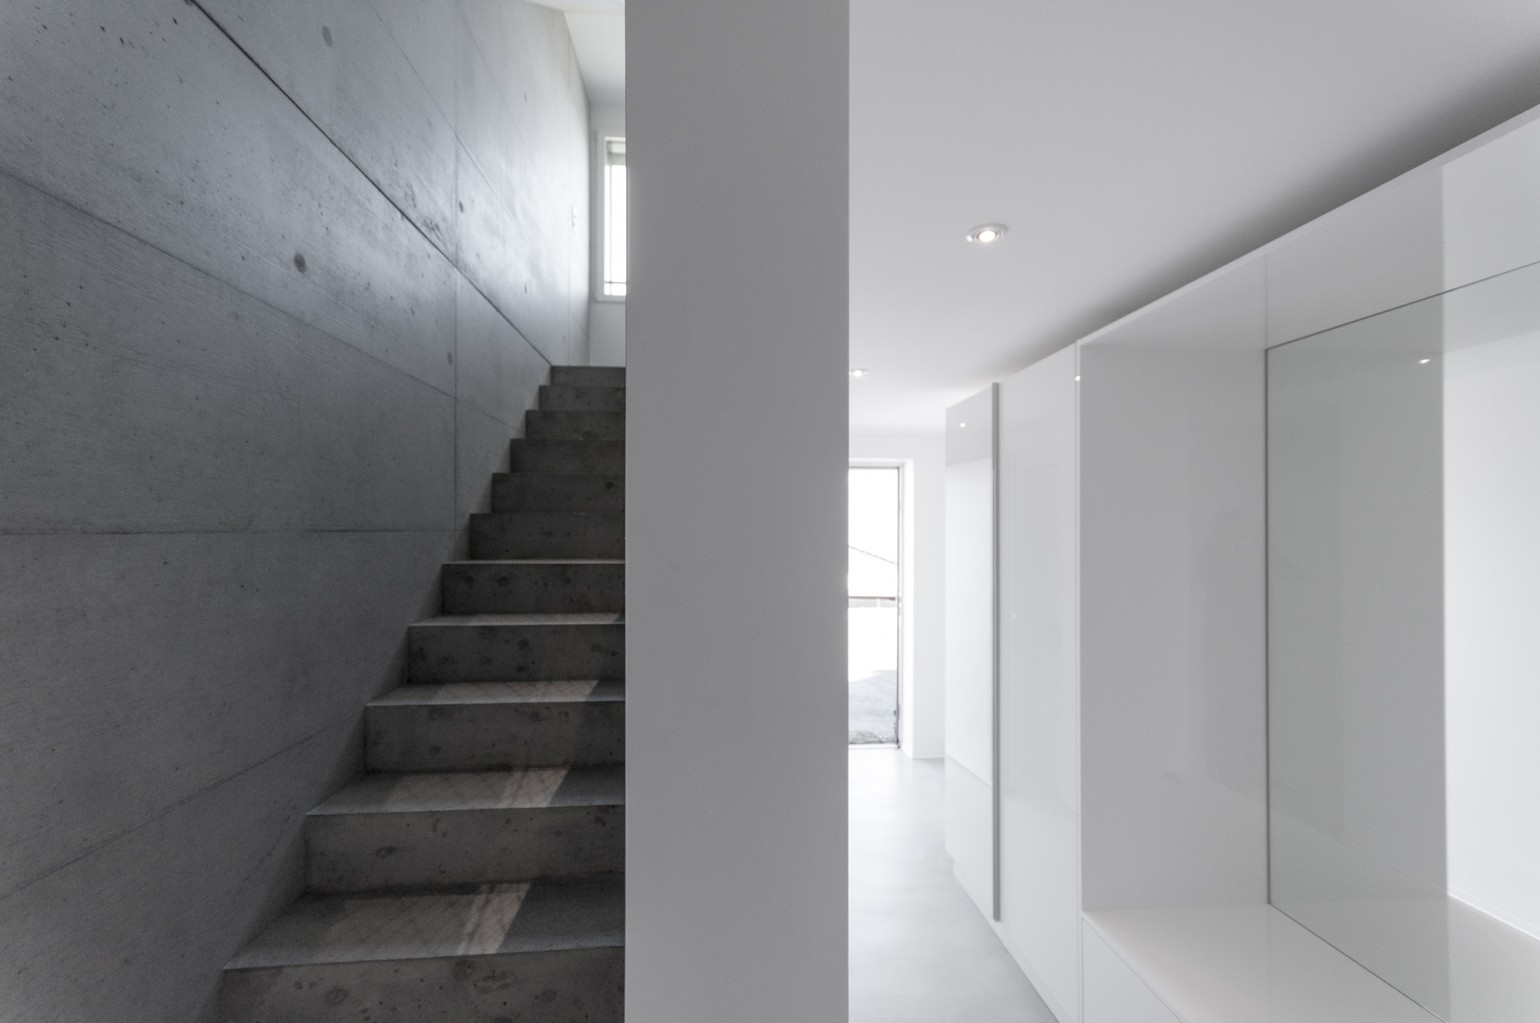 maison_catanese_choex_meyer_architecture_sion_12